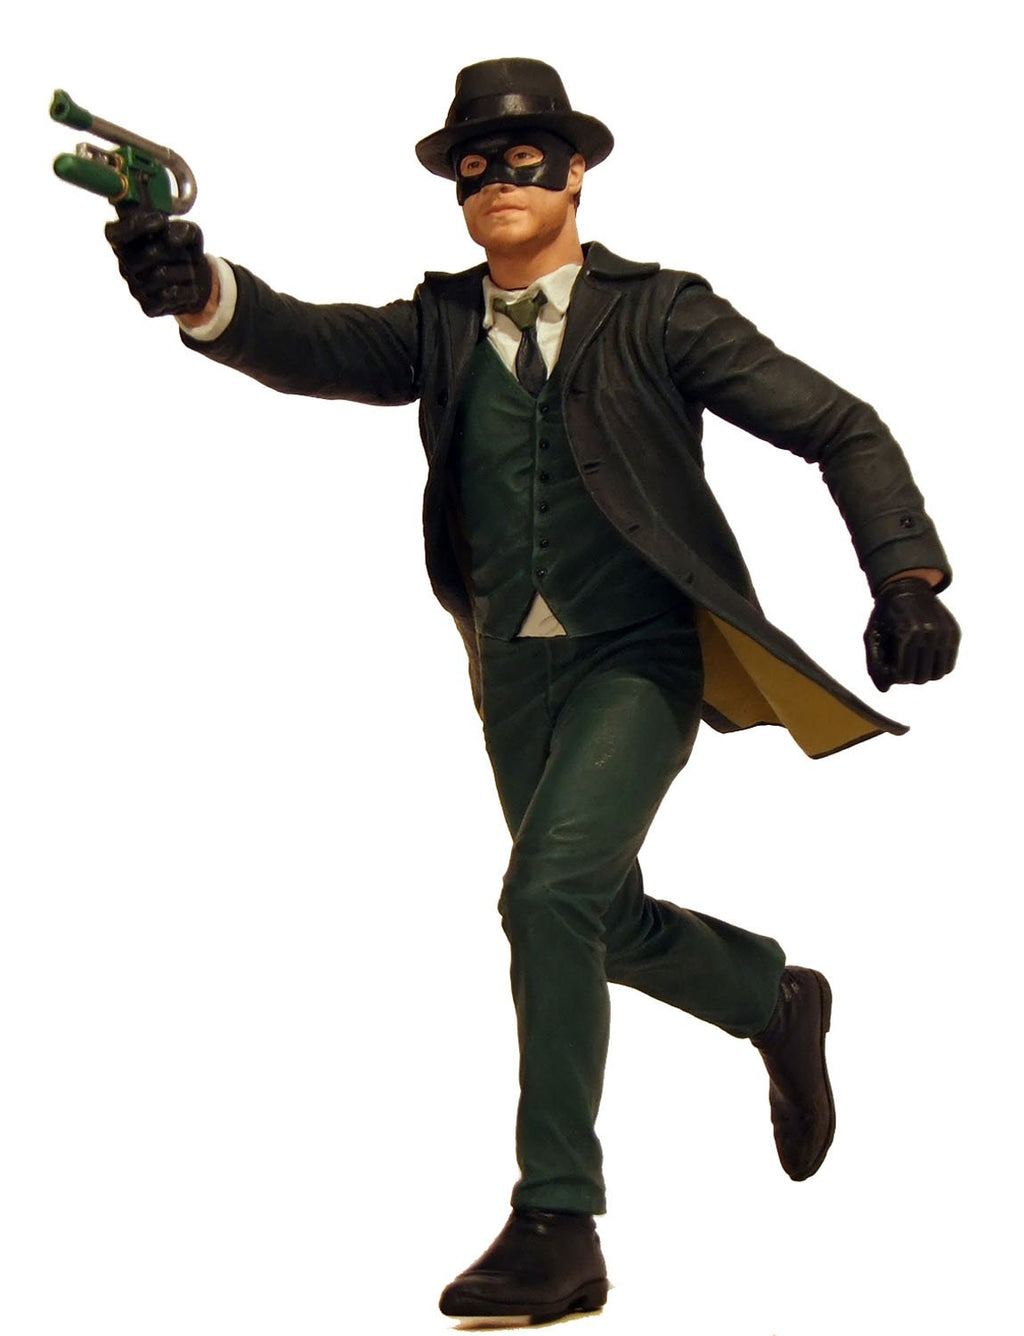 Factory Entertainment Green Hornet Movie: Green Hornet Action Figure